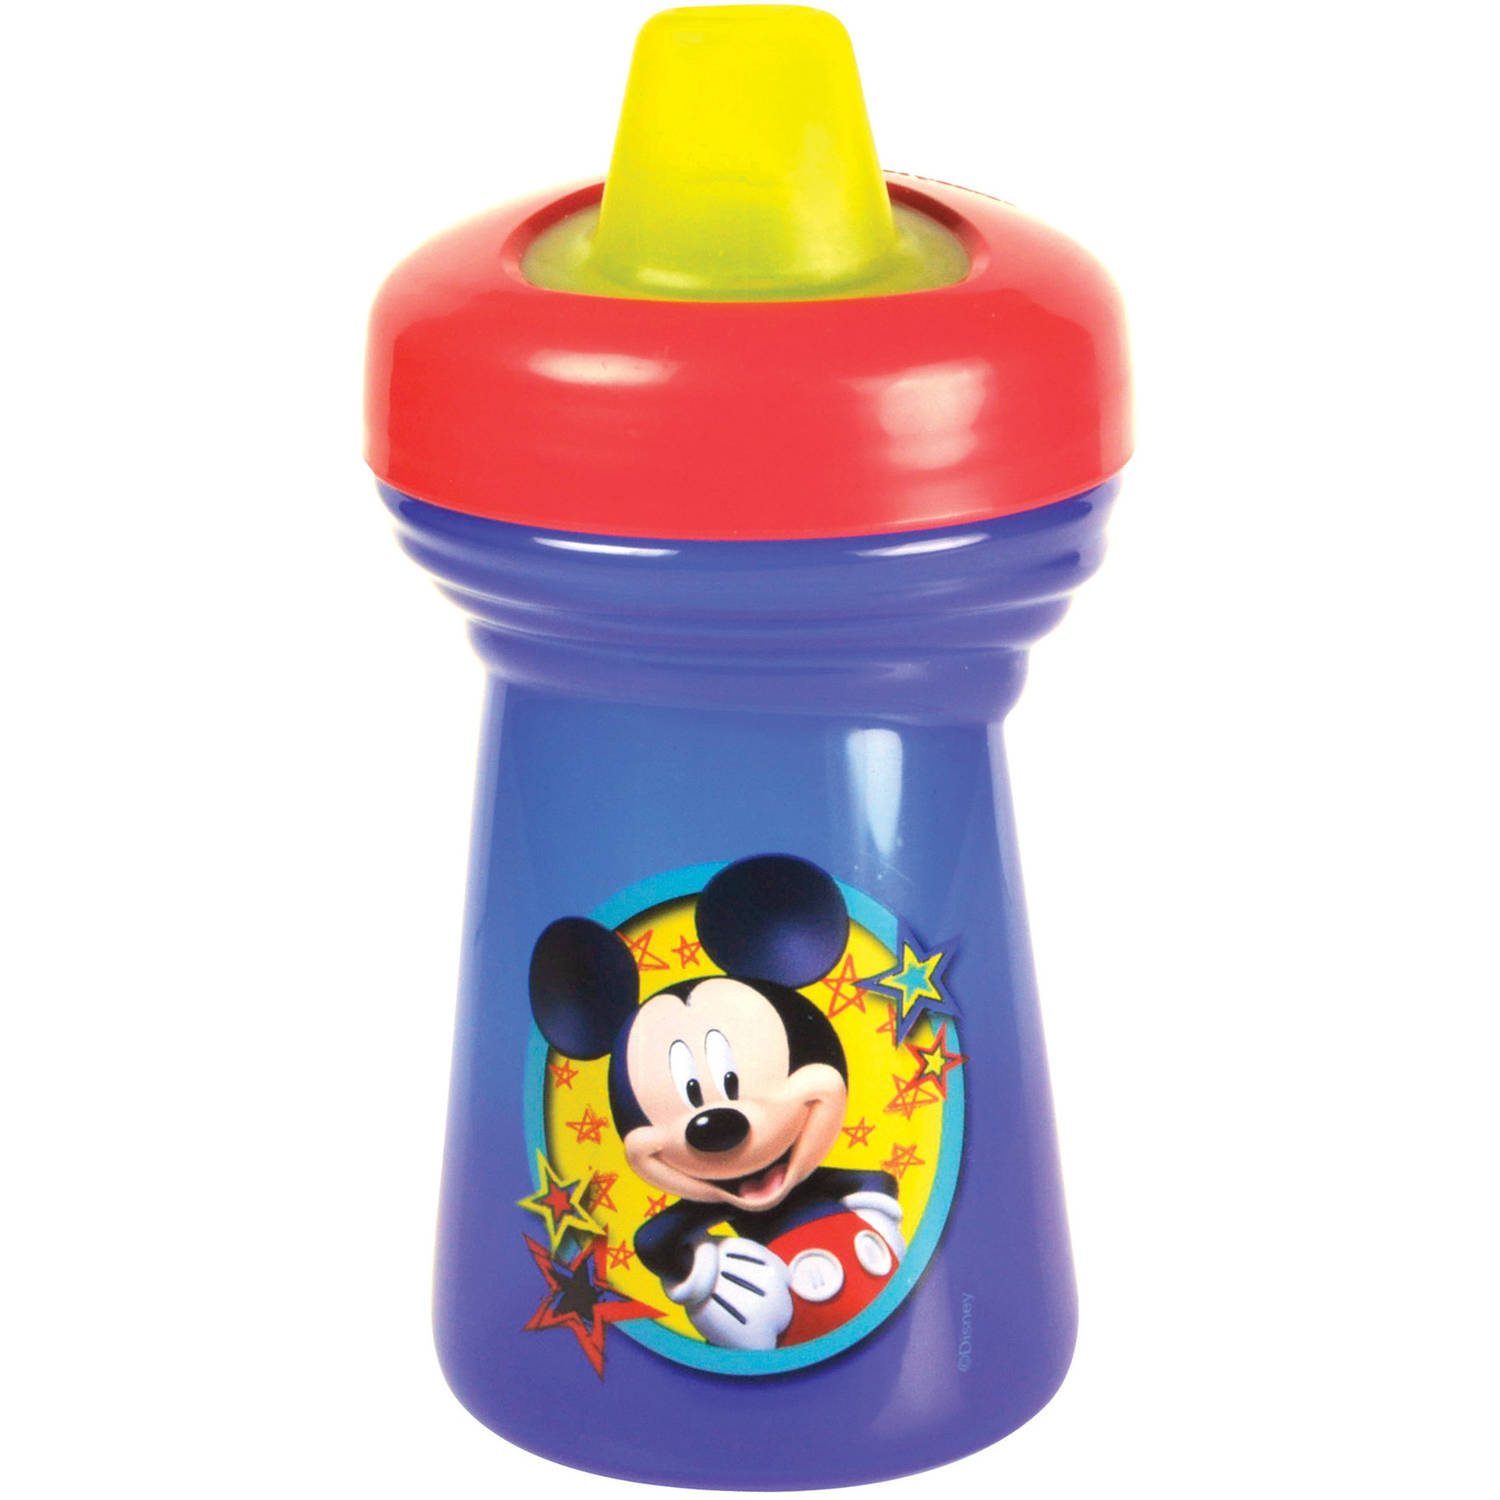 The First Years Disney Baby Mickey Mouse Soft Spout Cup, BPA-Free